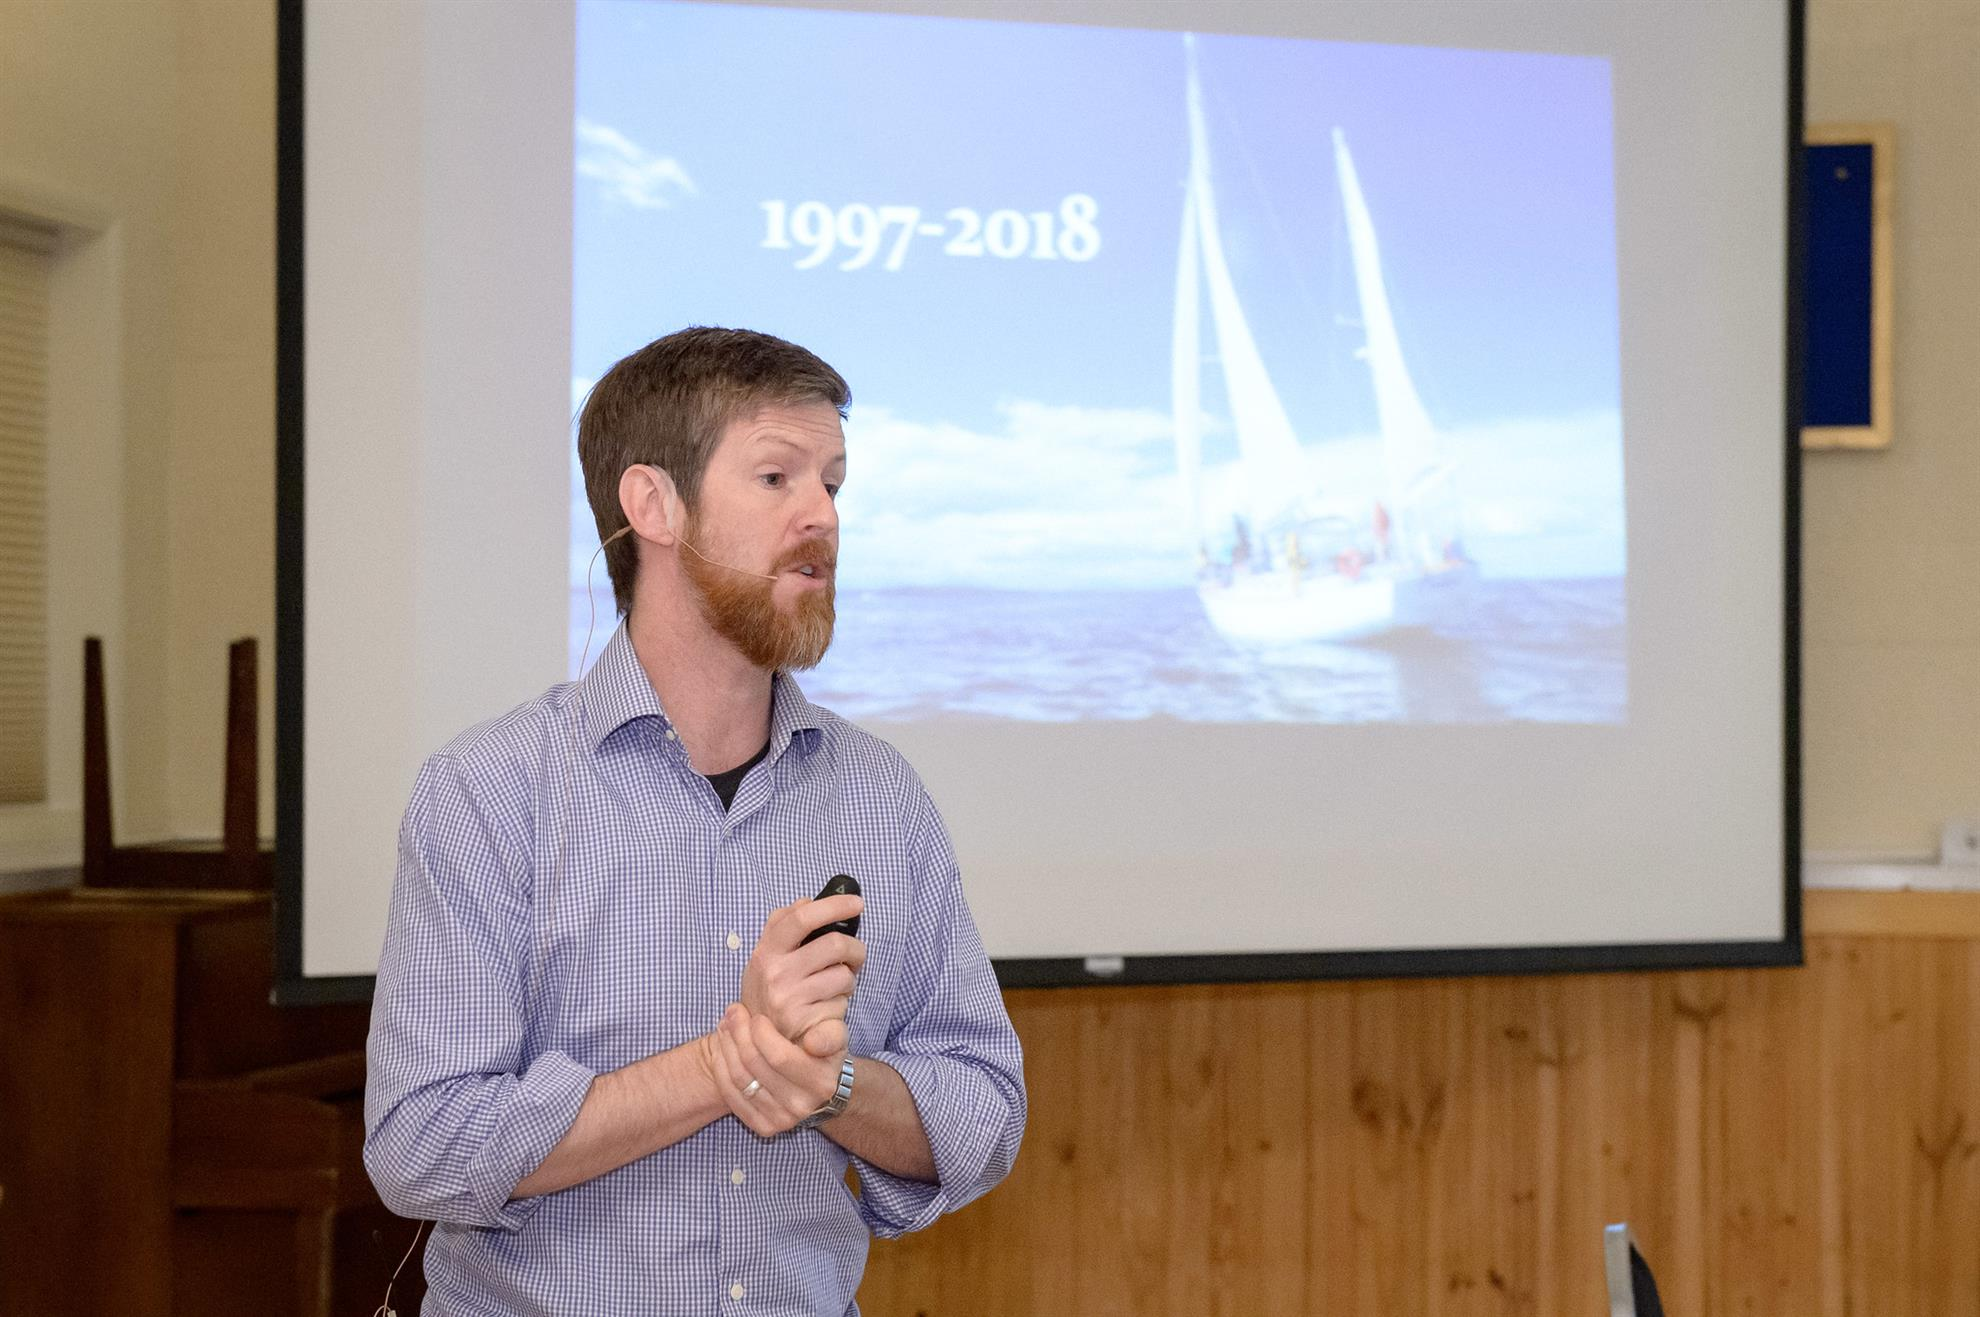 Presentation: Seth Muir, of Salish Sea Expeditions